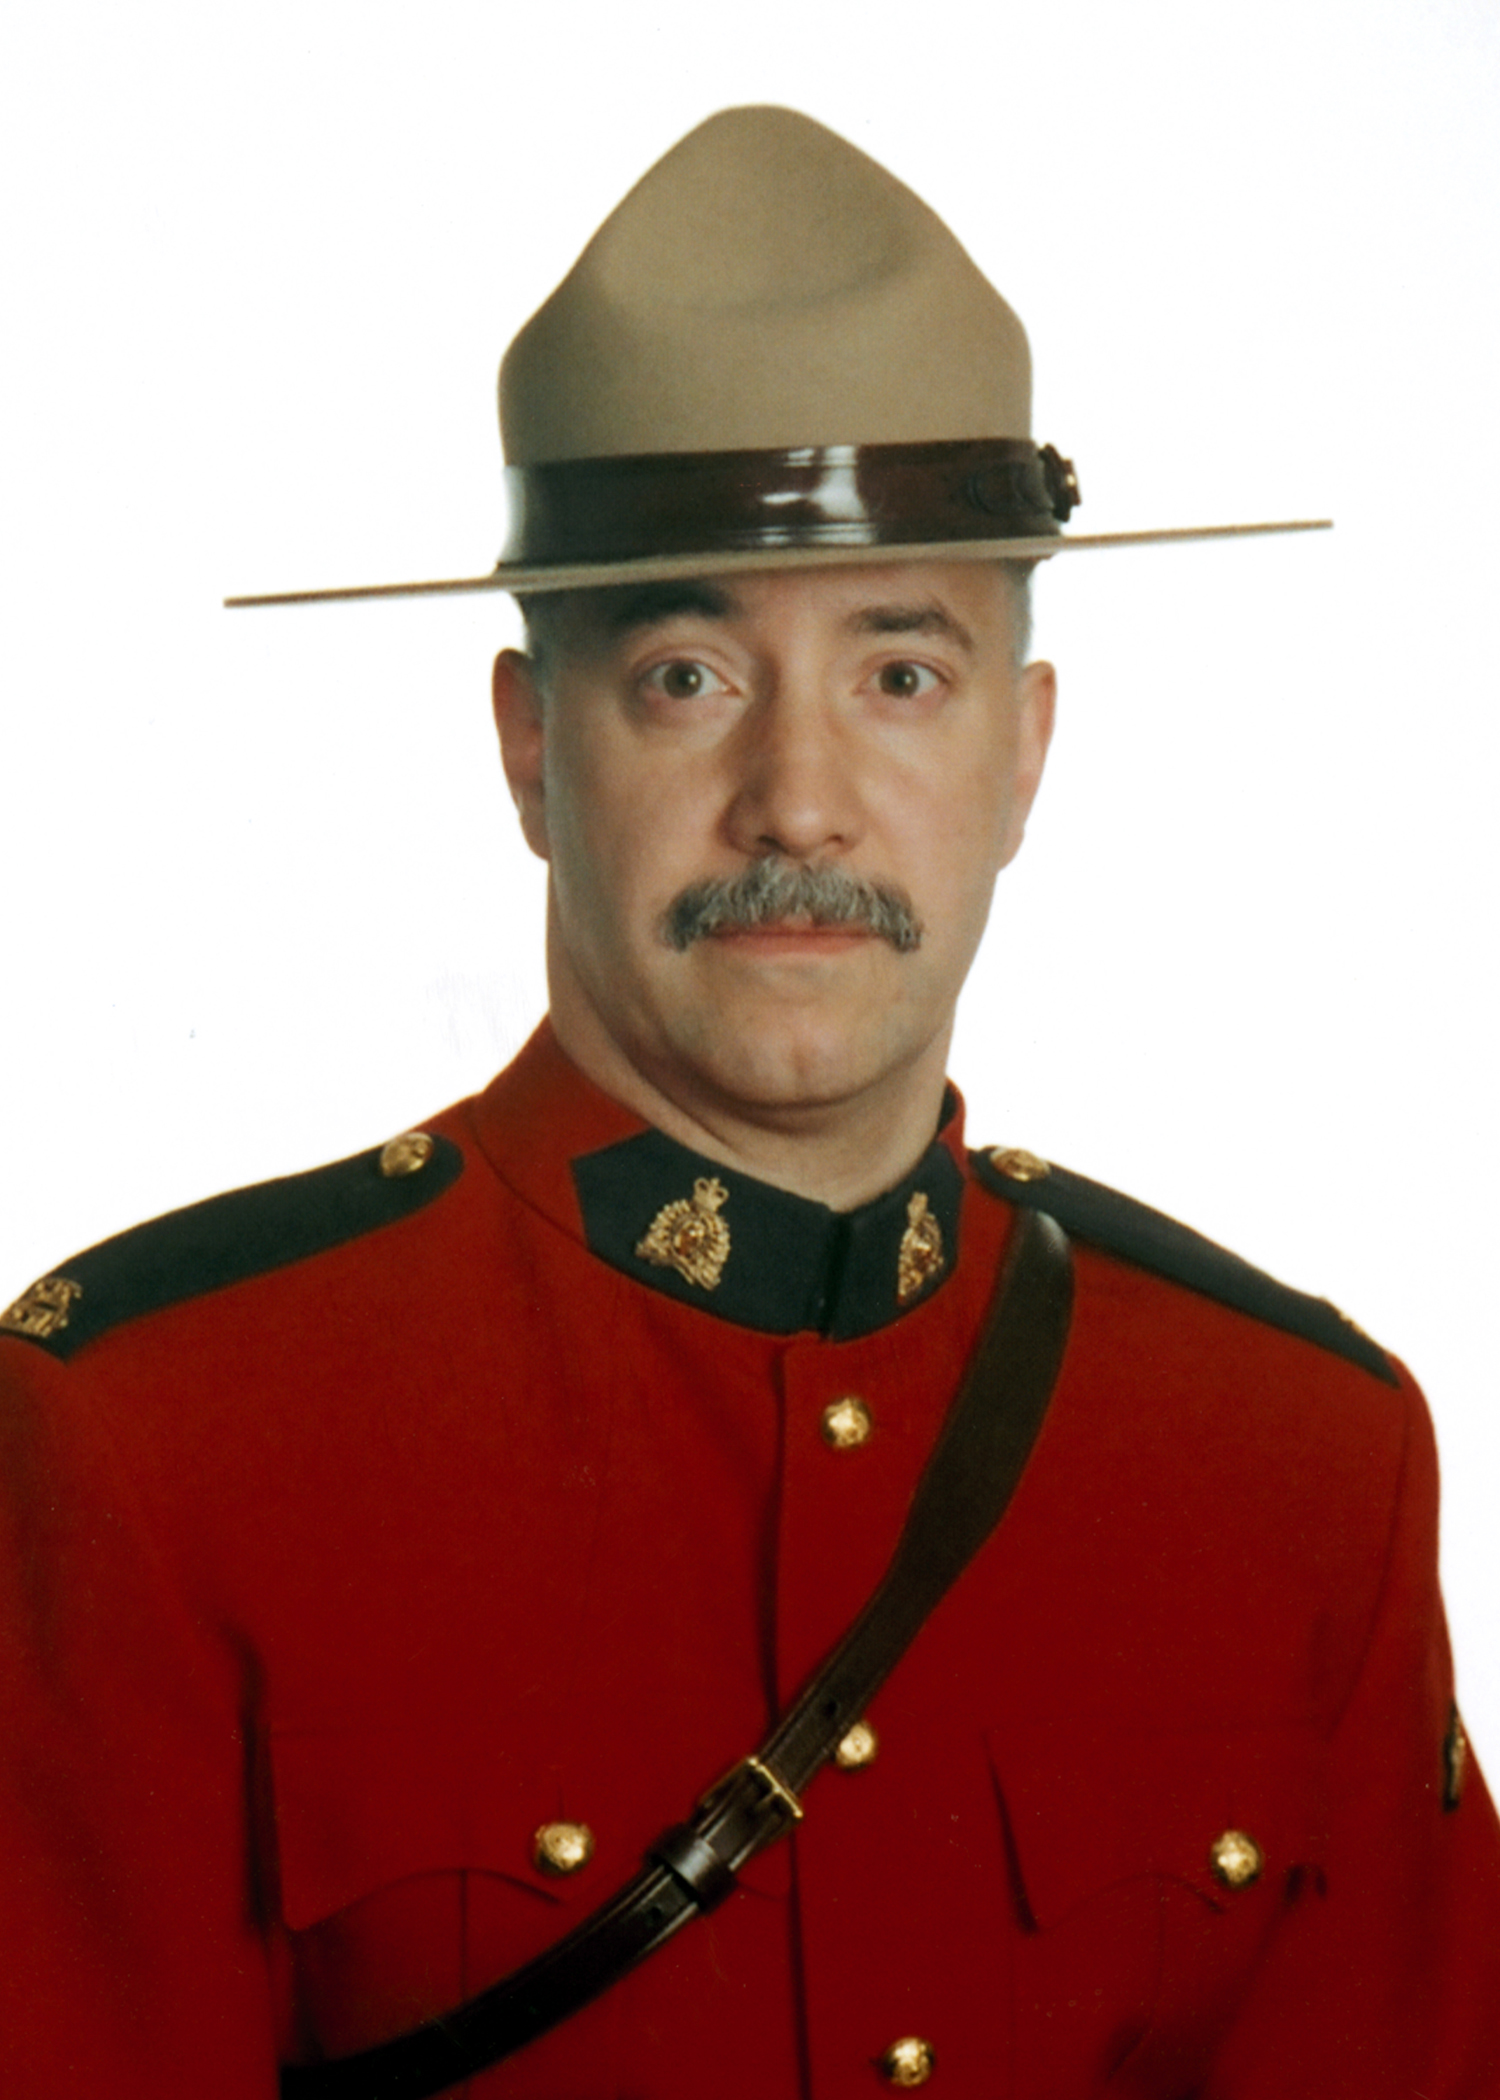 Constable José Manuel Agostinho– © Her Majesty the Queen in Right of Canada as represented by the Royal Canadian Mounted Police